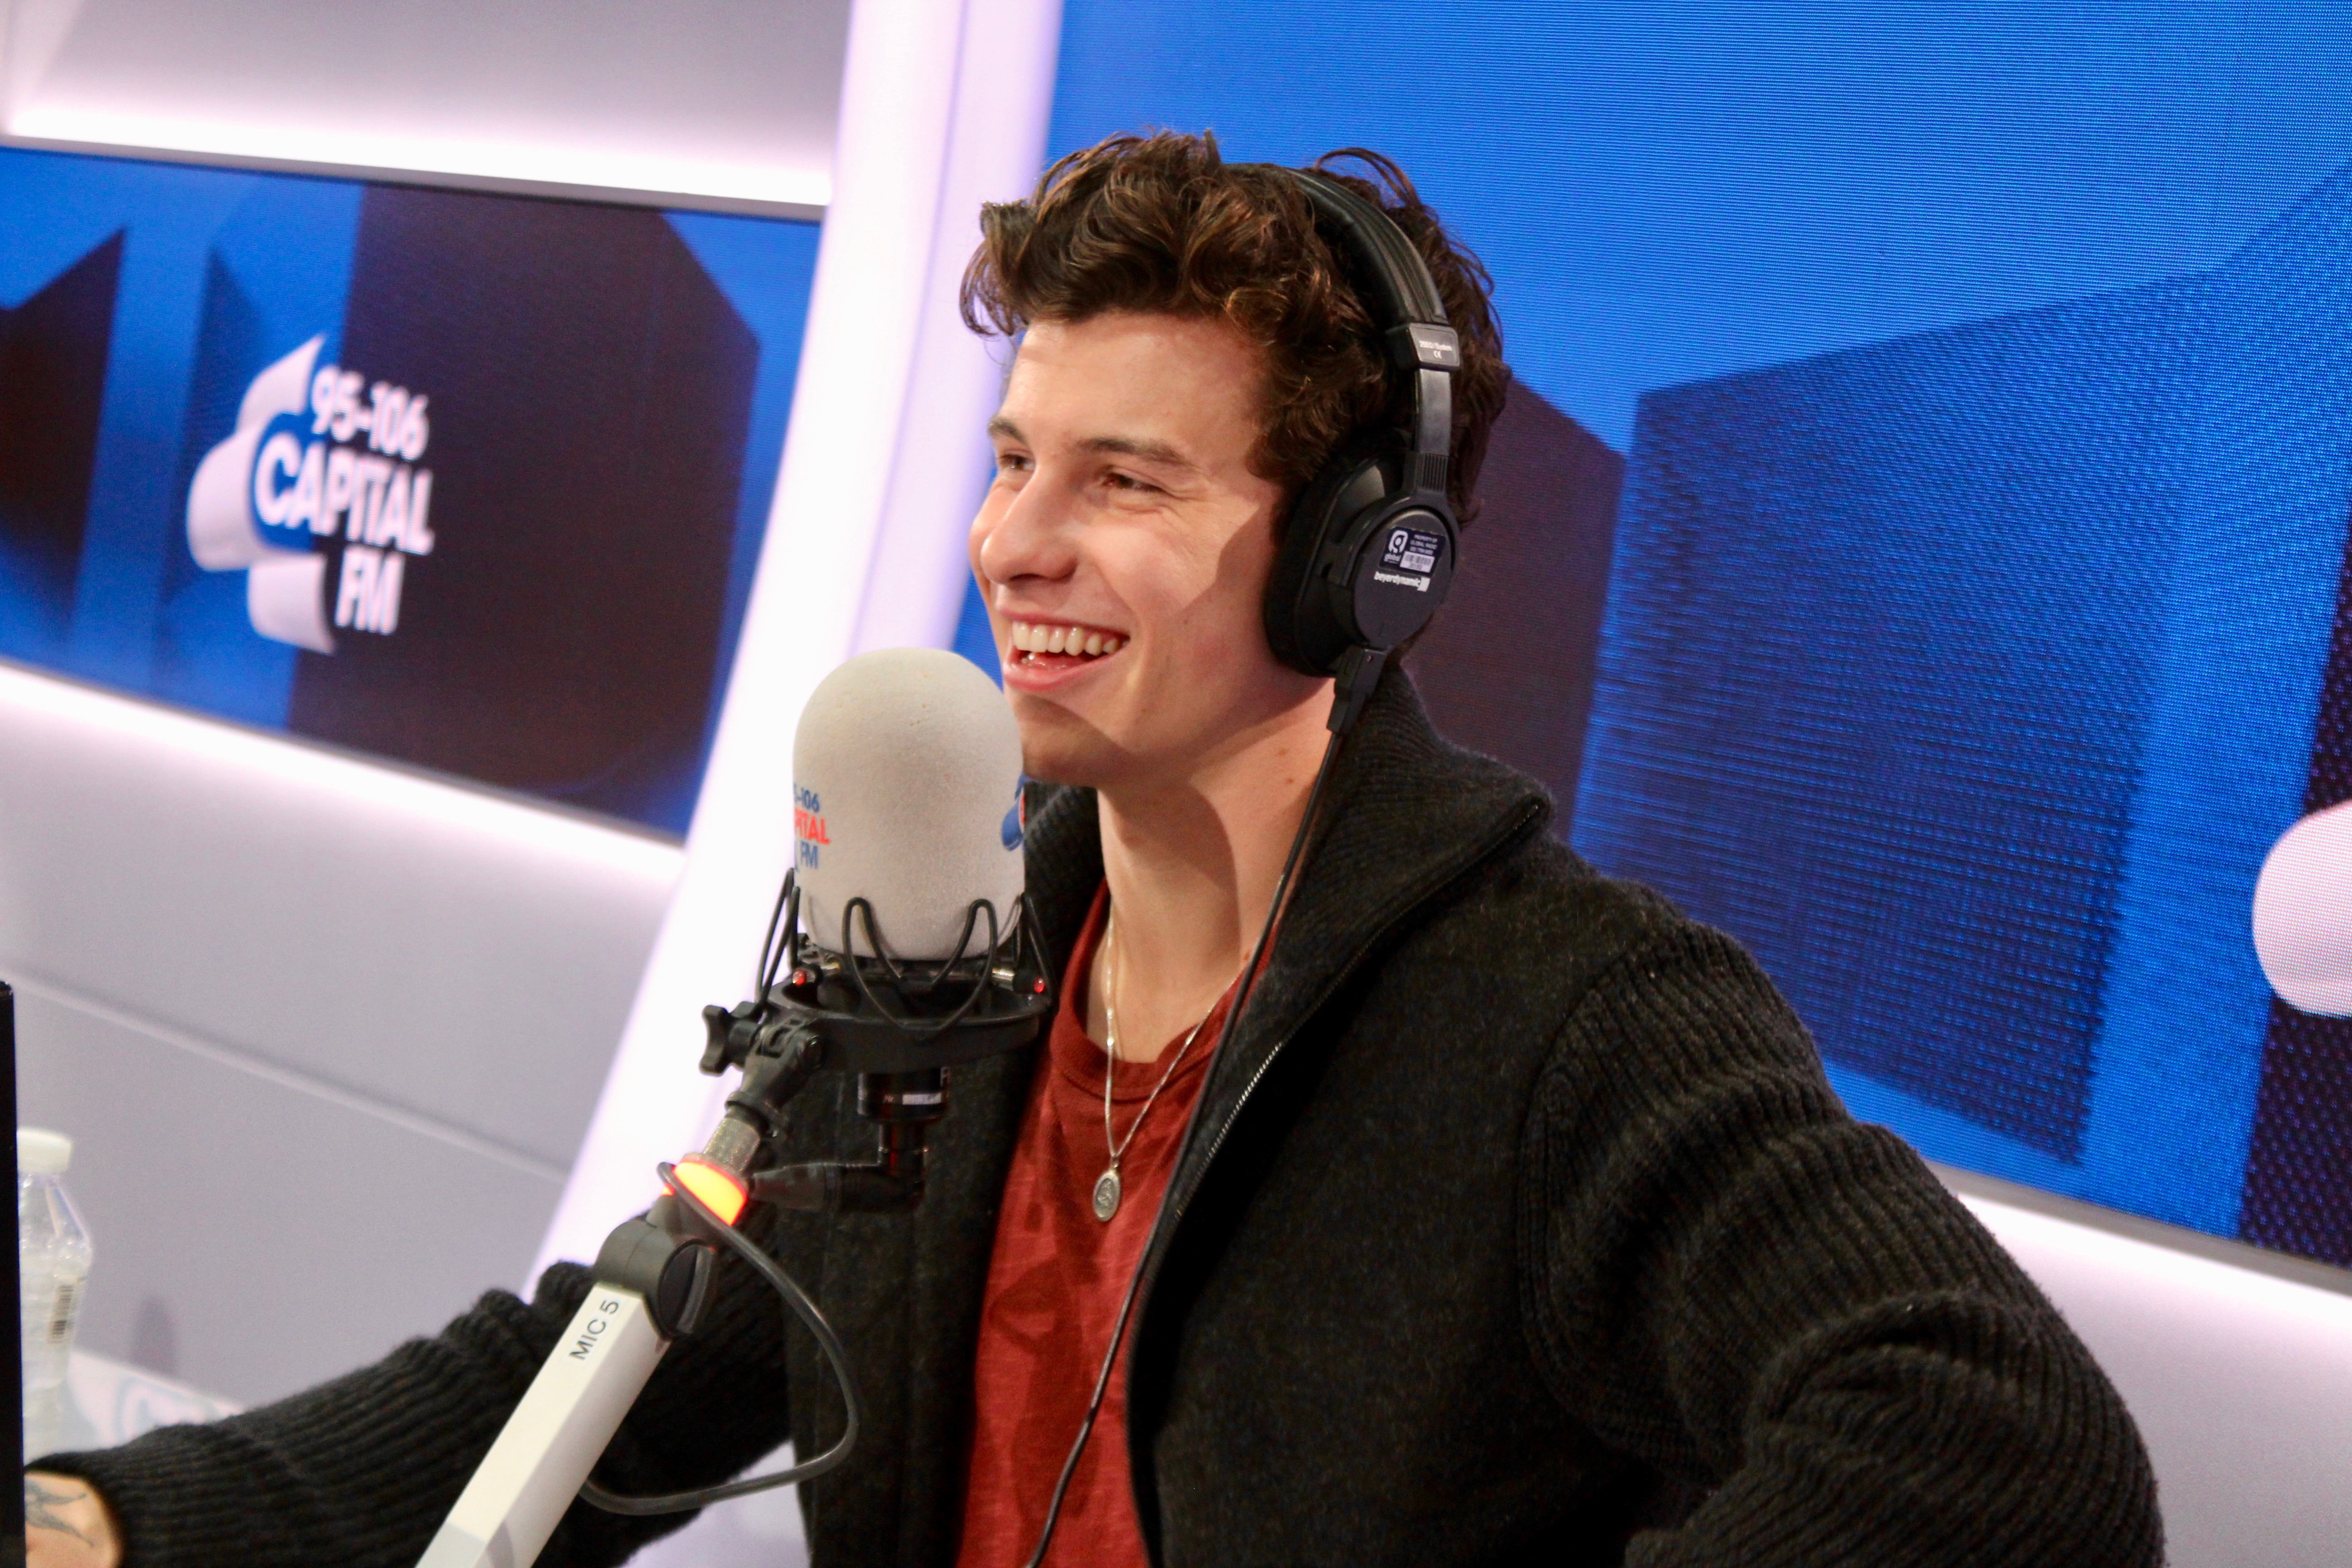 Shawn Mendes on Capital Breakfast with Roman Kemp